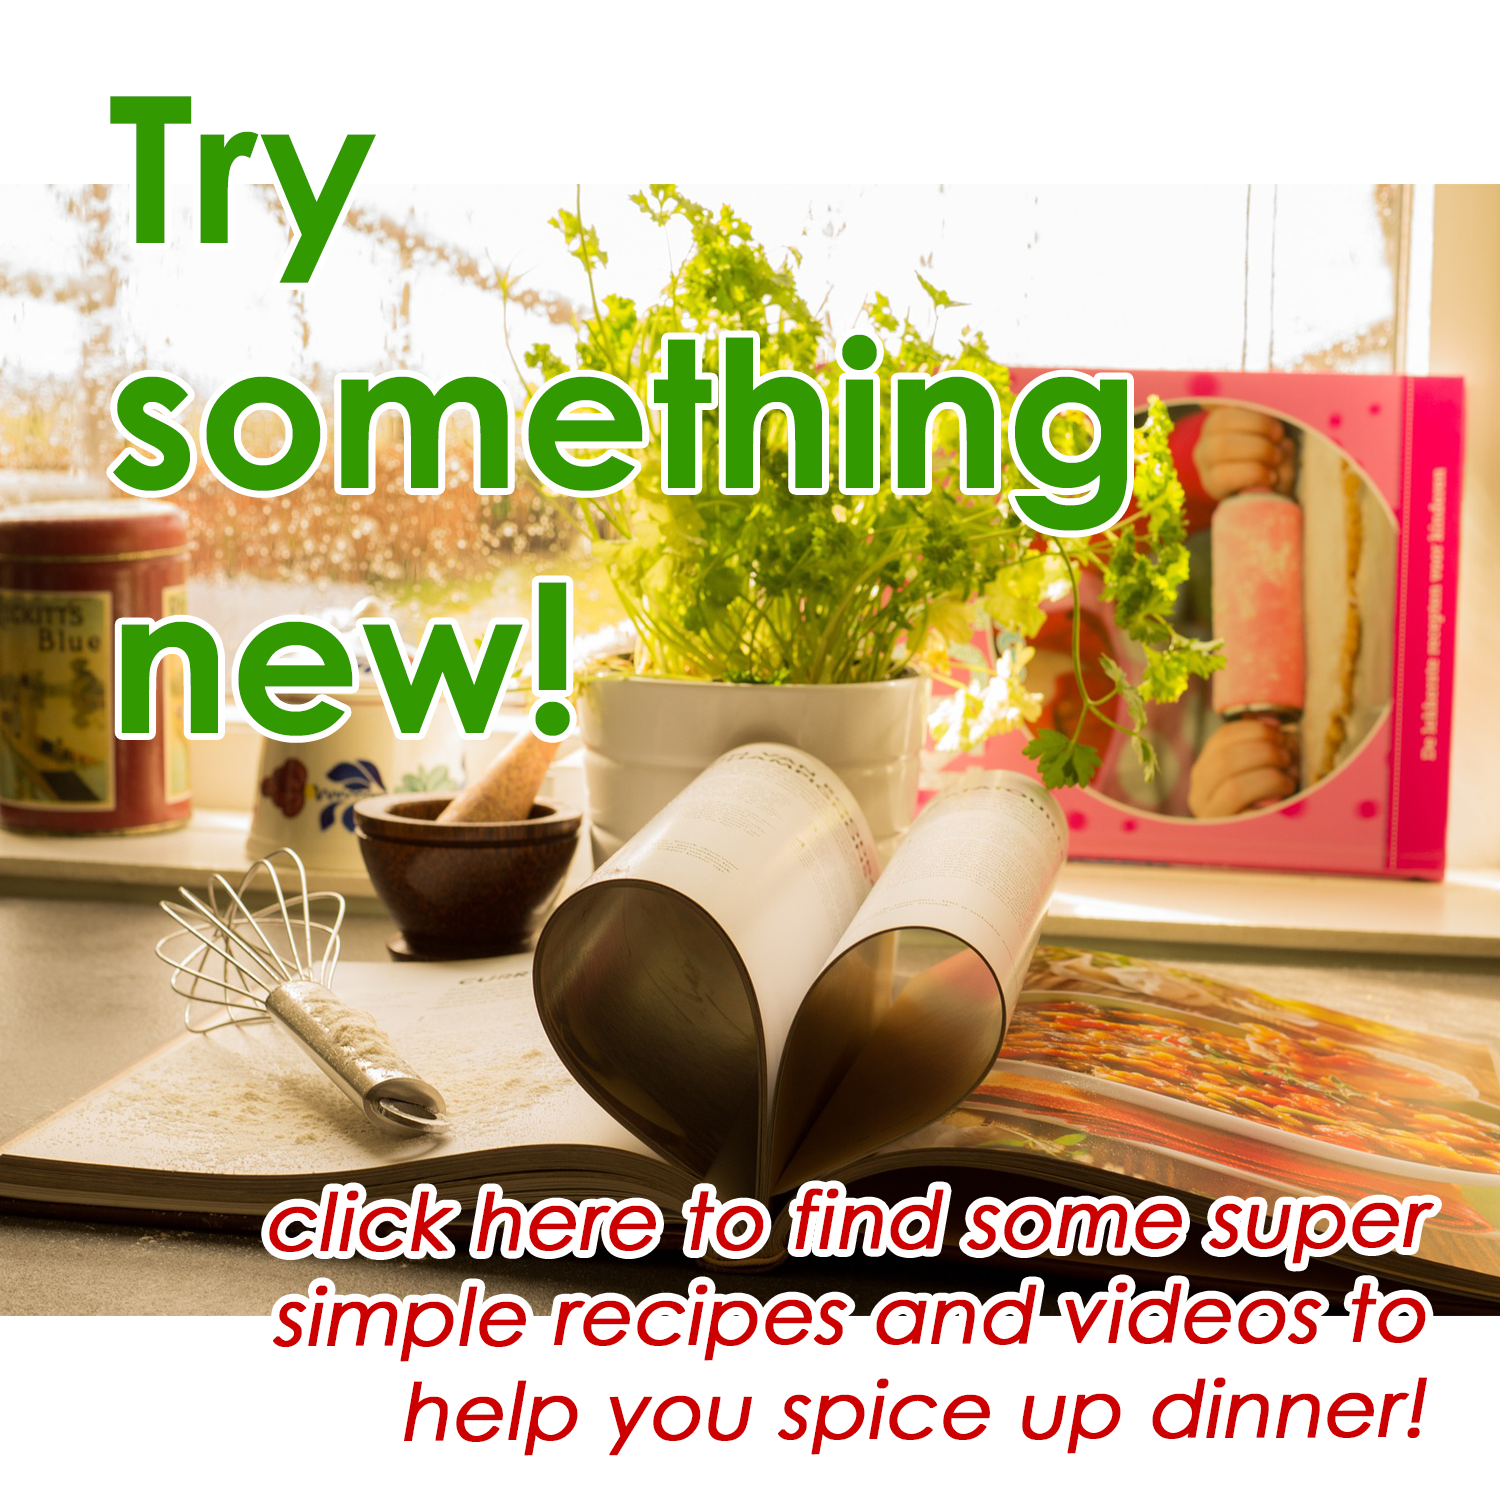 Click on the image for links to super simple recipes, crafts, and videos you can try!